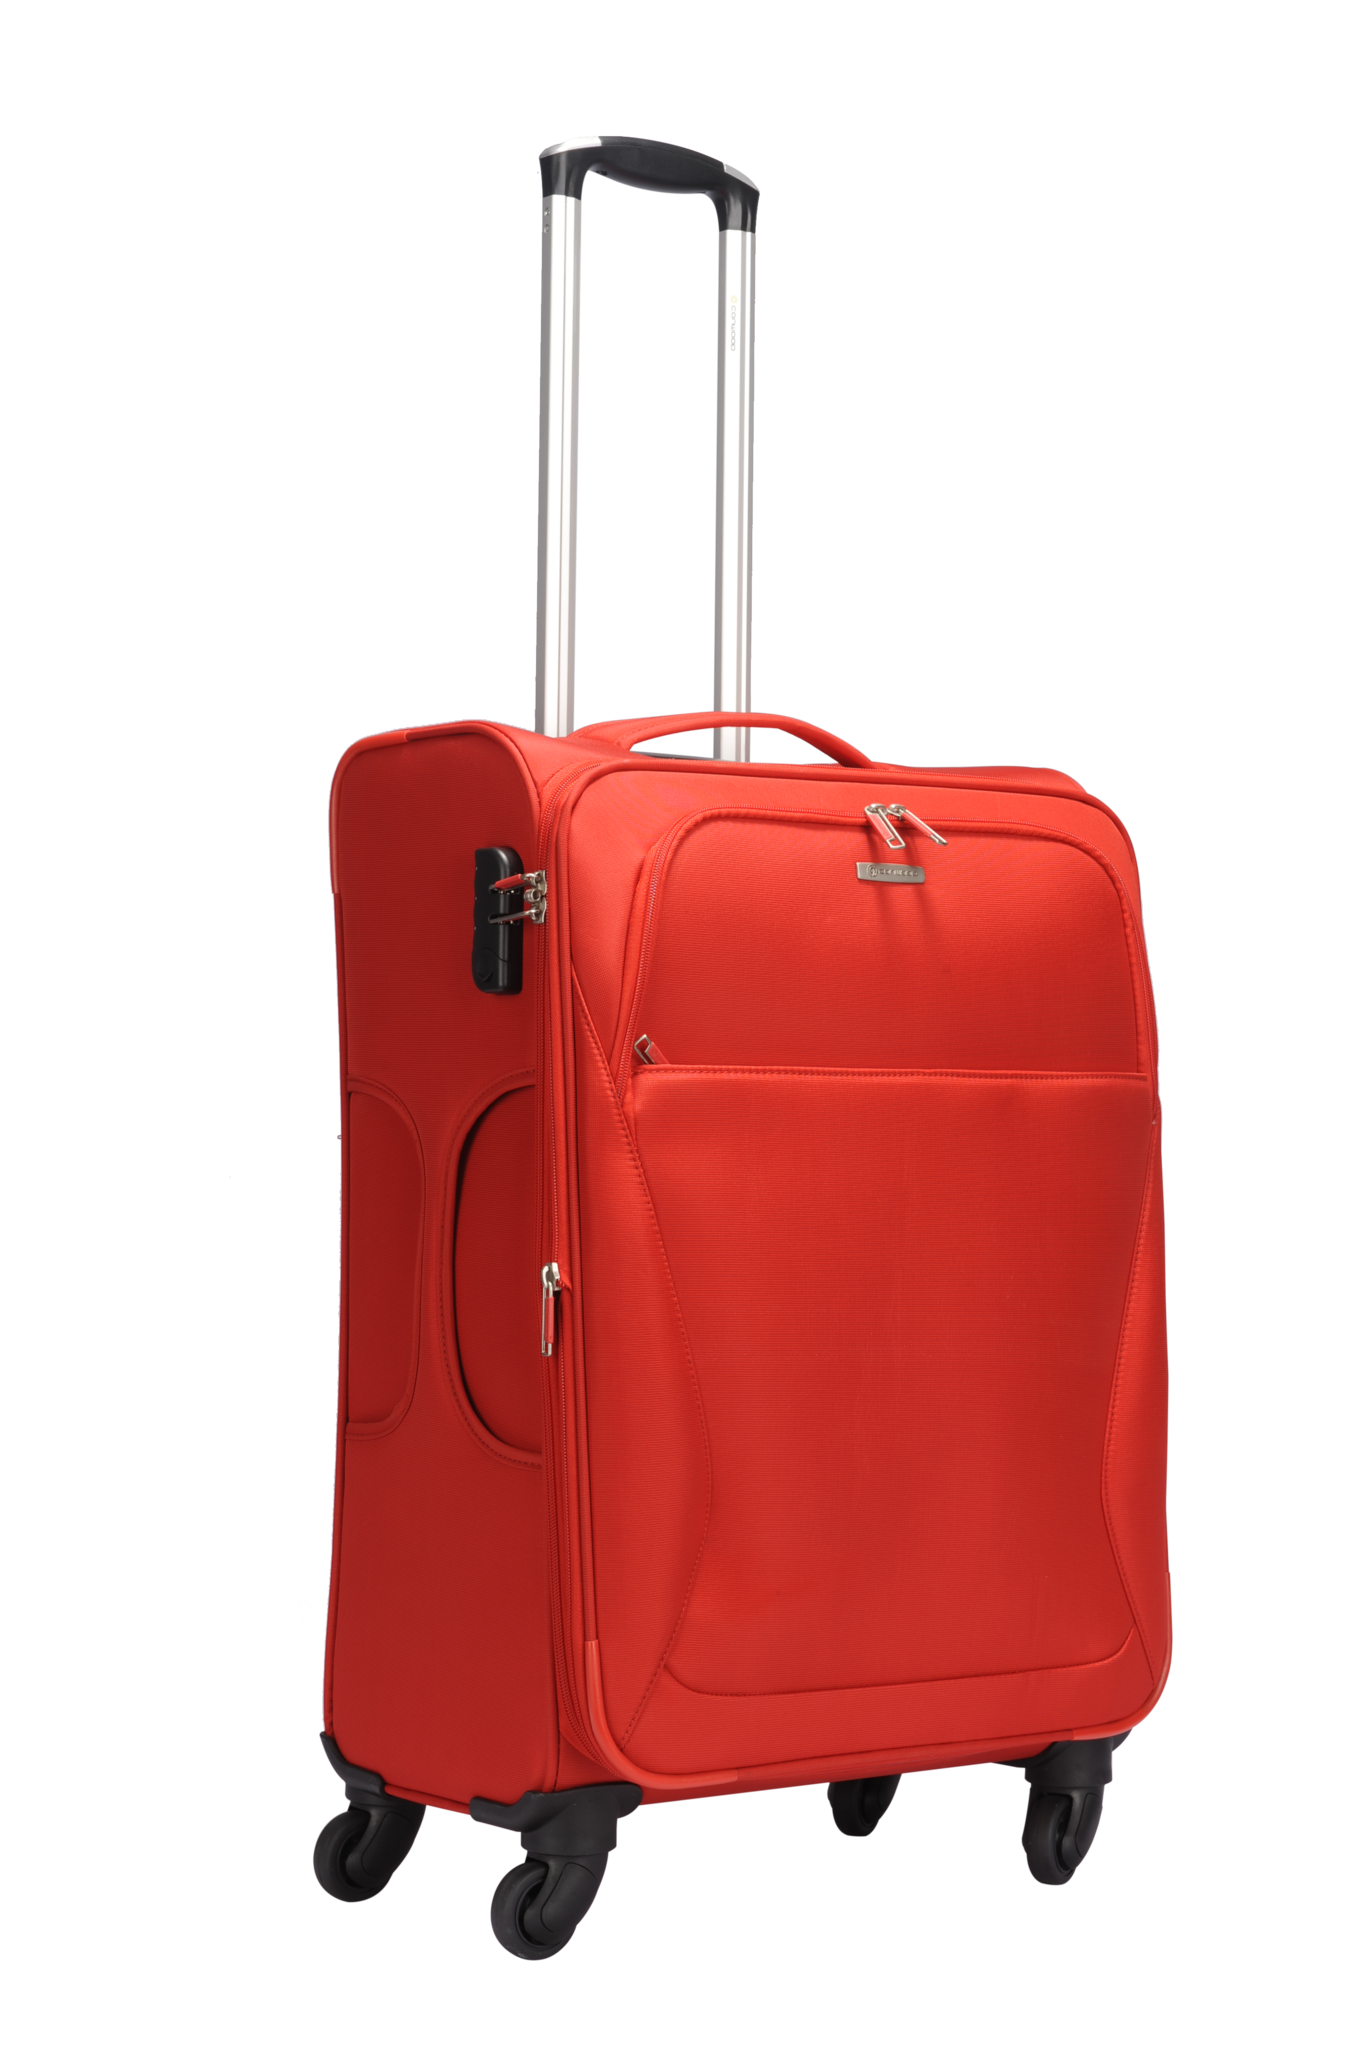 luggage png images are download #35097